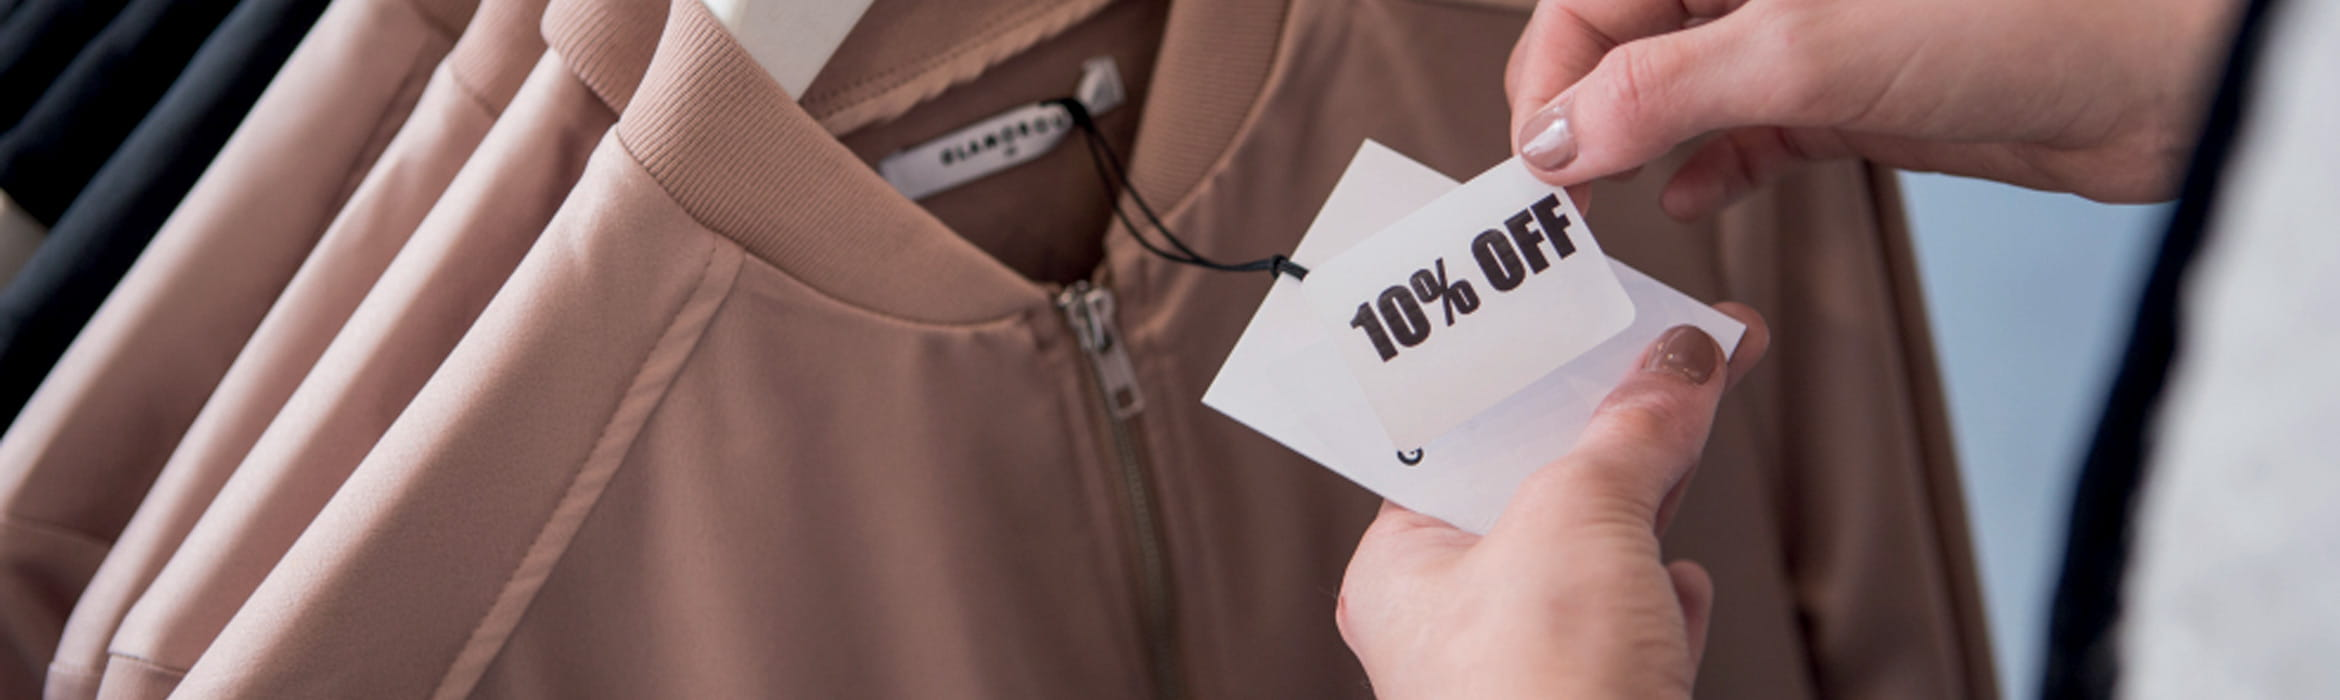 10% off mark-down label being applied to clothing